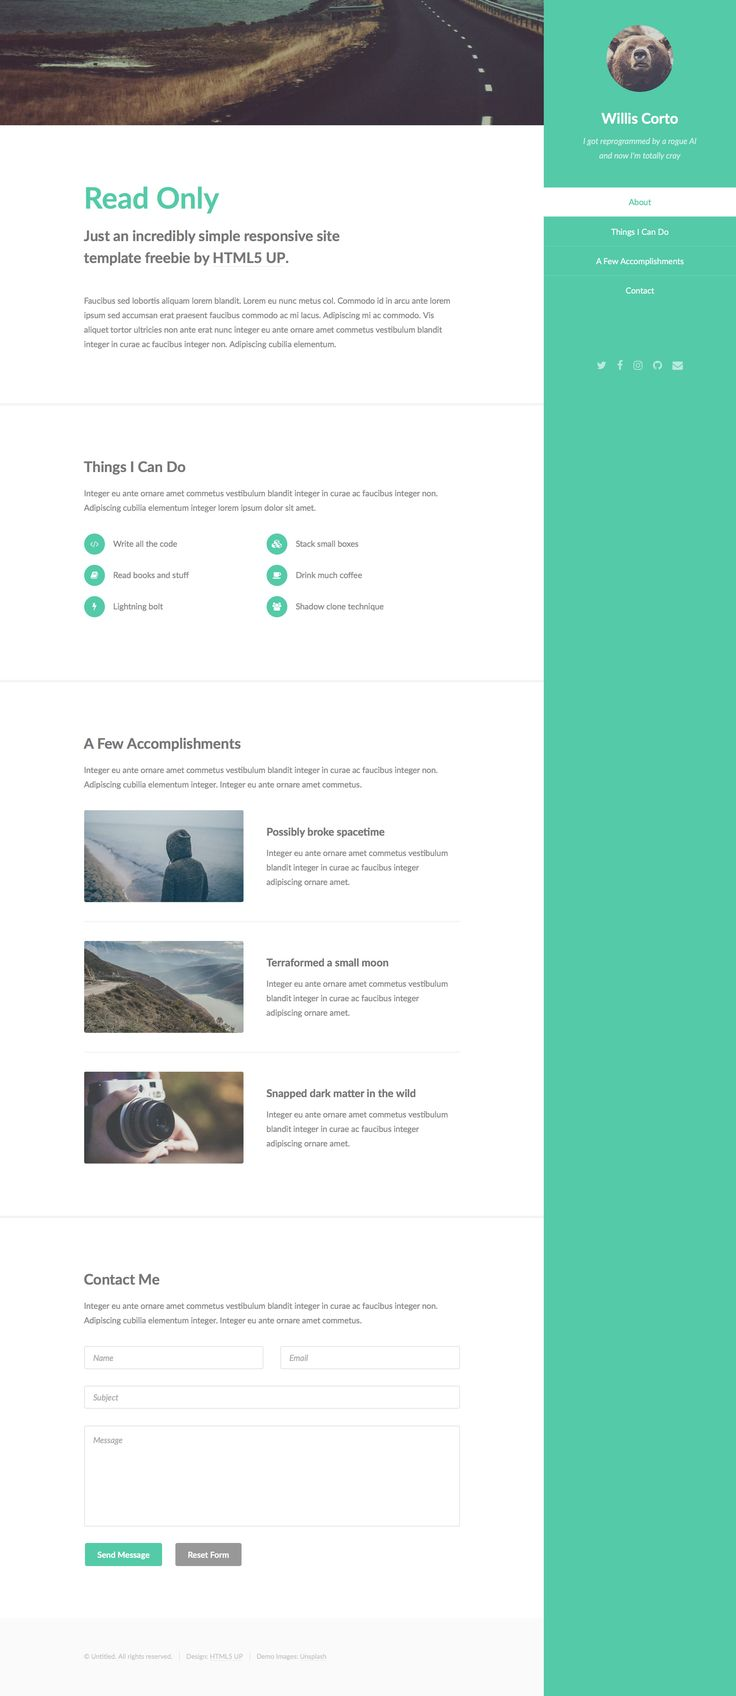 Read Only is a super simple single-page responsive HTML5 website template built for personal sites and portfolios. It features a contact form, pre-styled elements, and Sass sources. Read Only is fully responsive and retina ready HTML5 template.